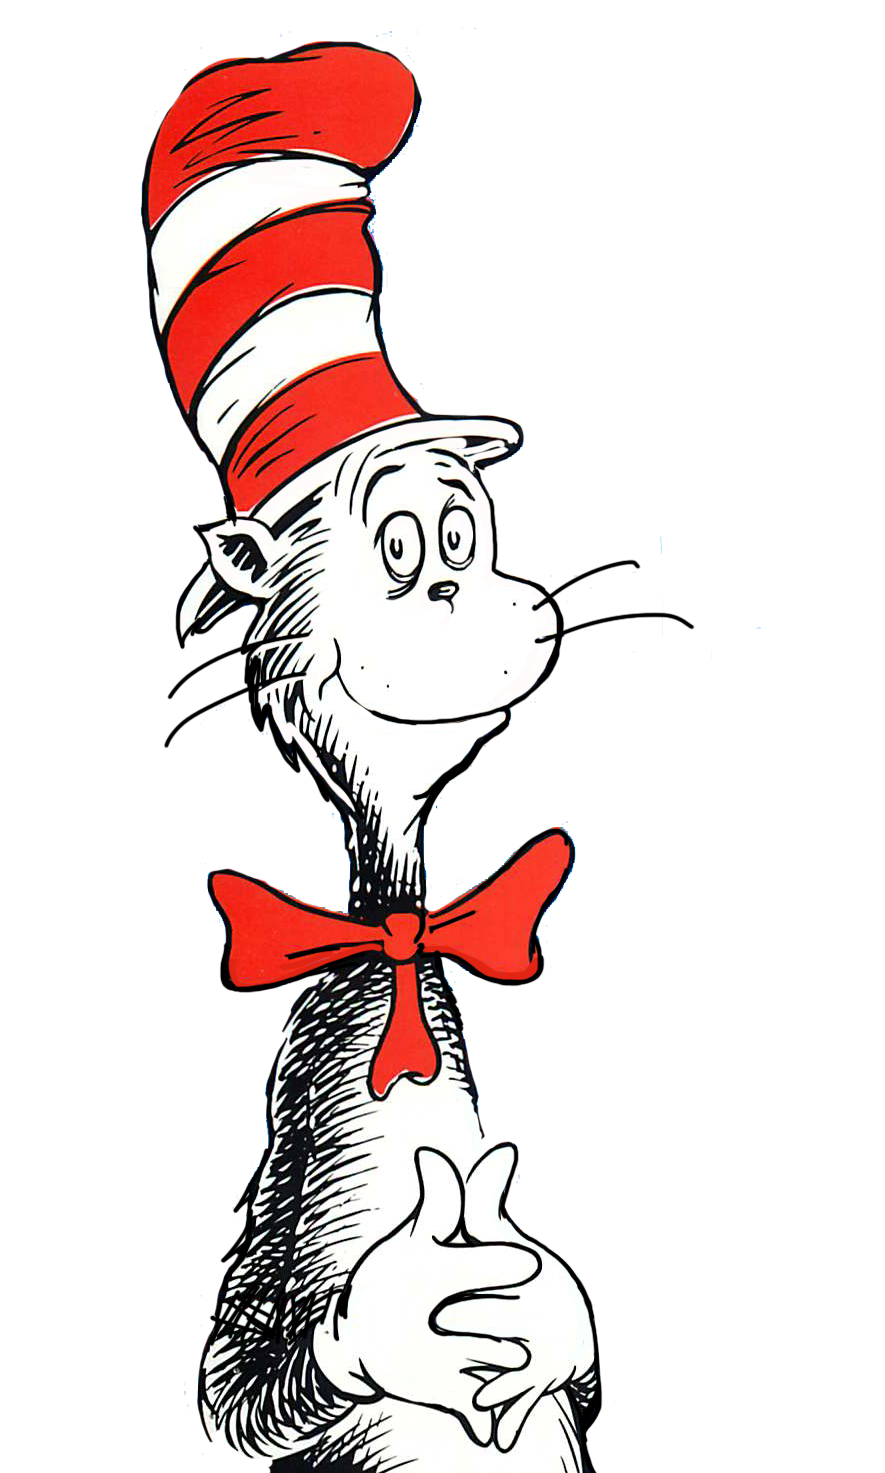 Dr seuss clipart cat in hat. See seussical live on